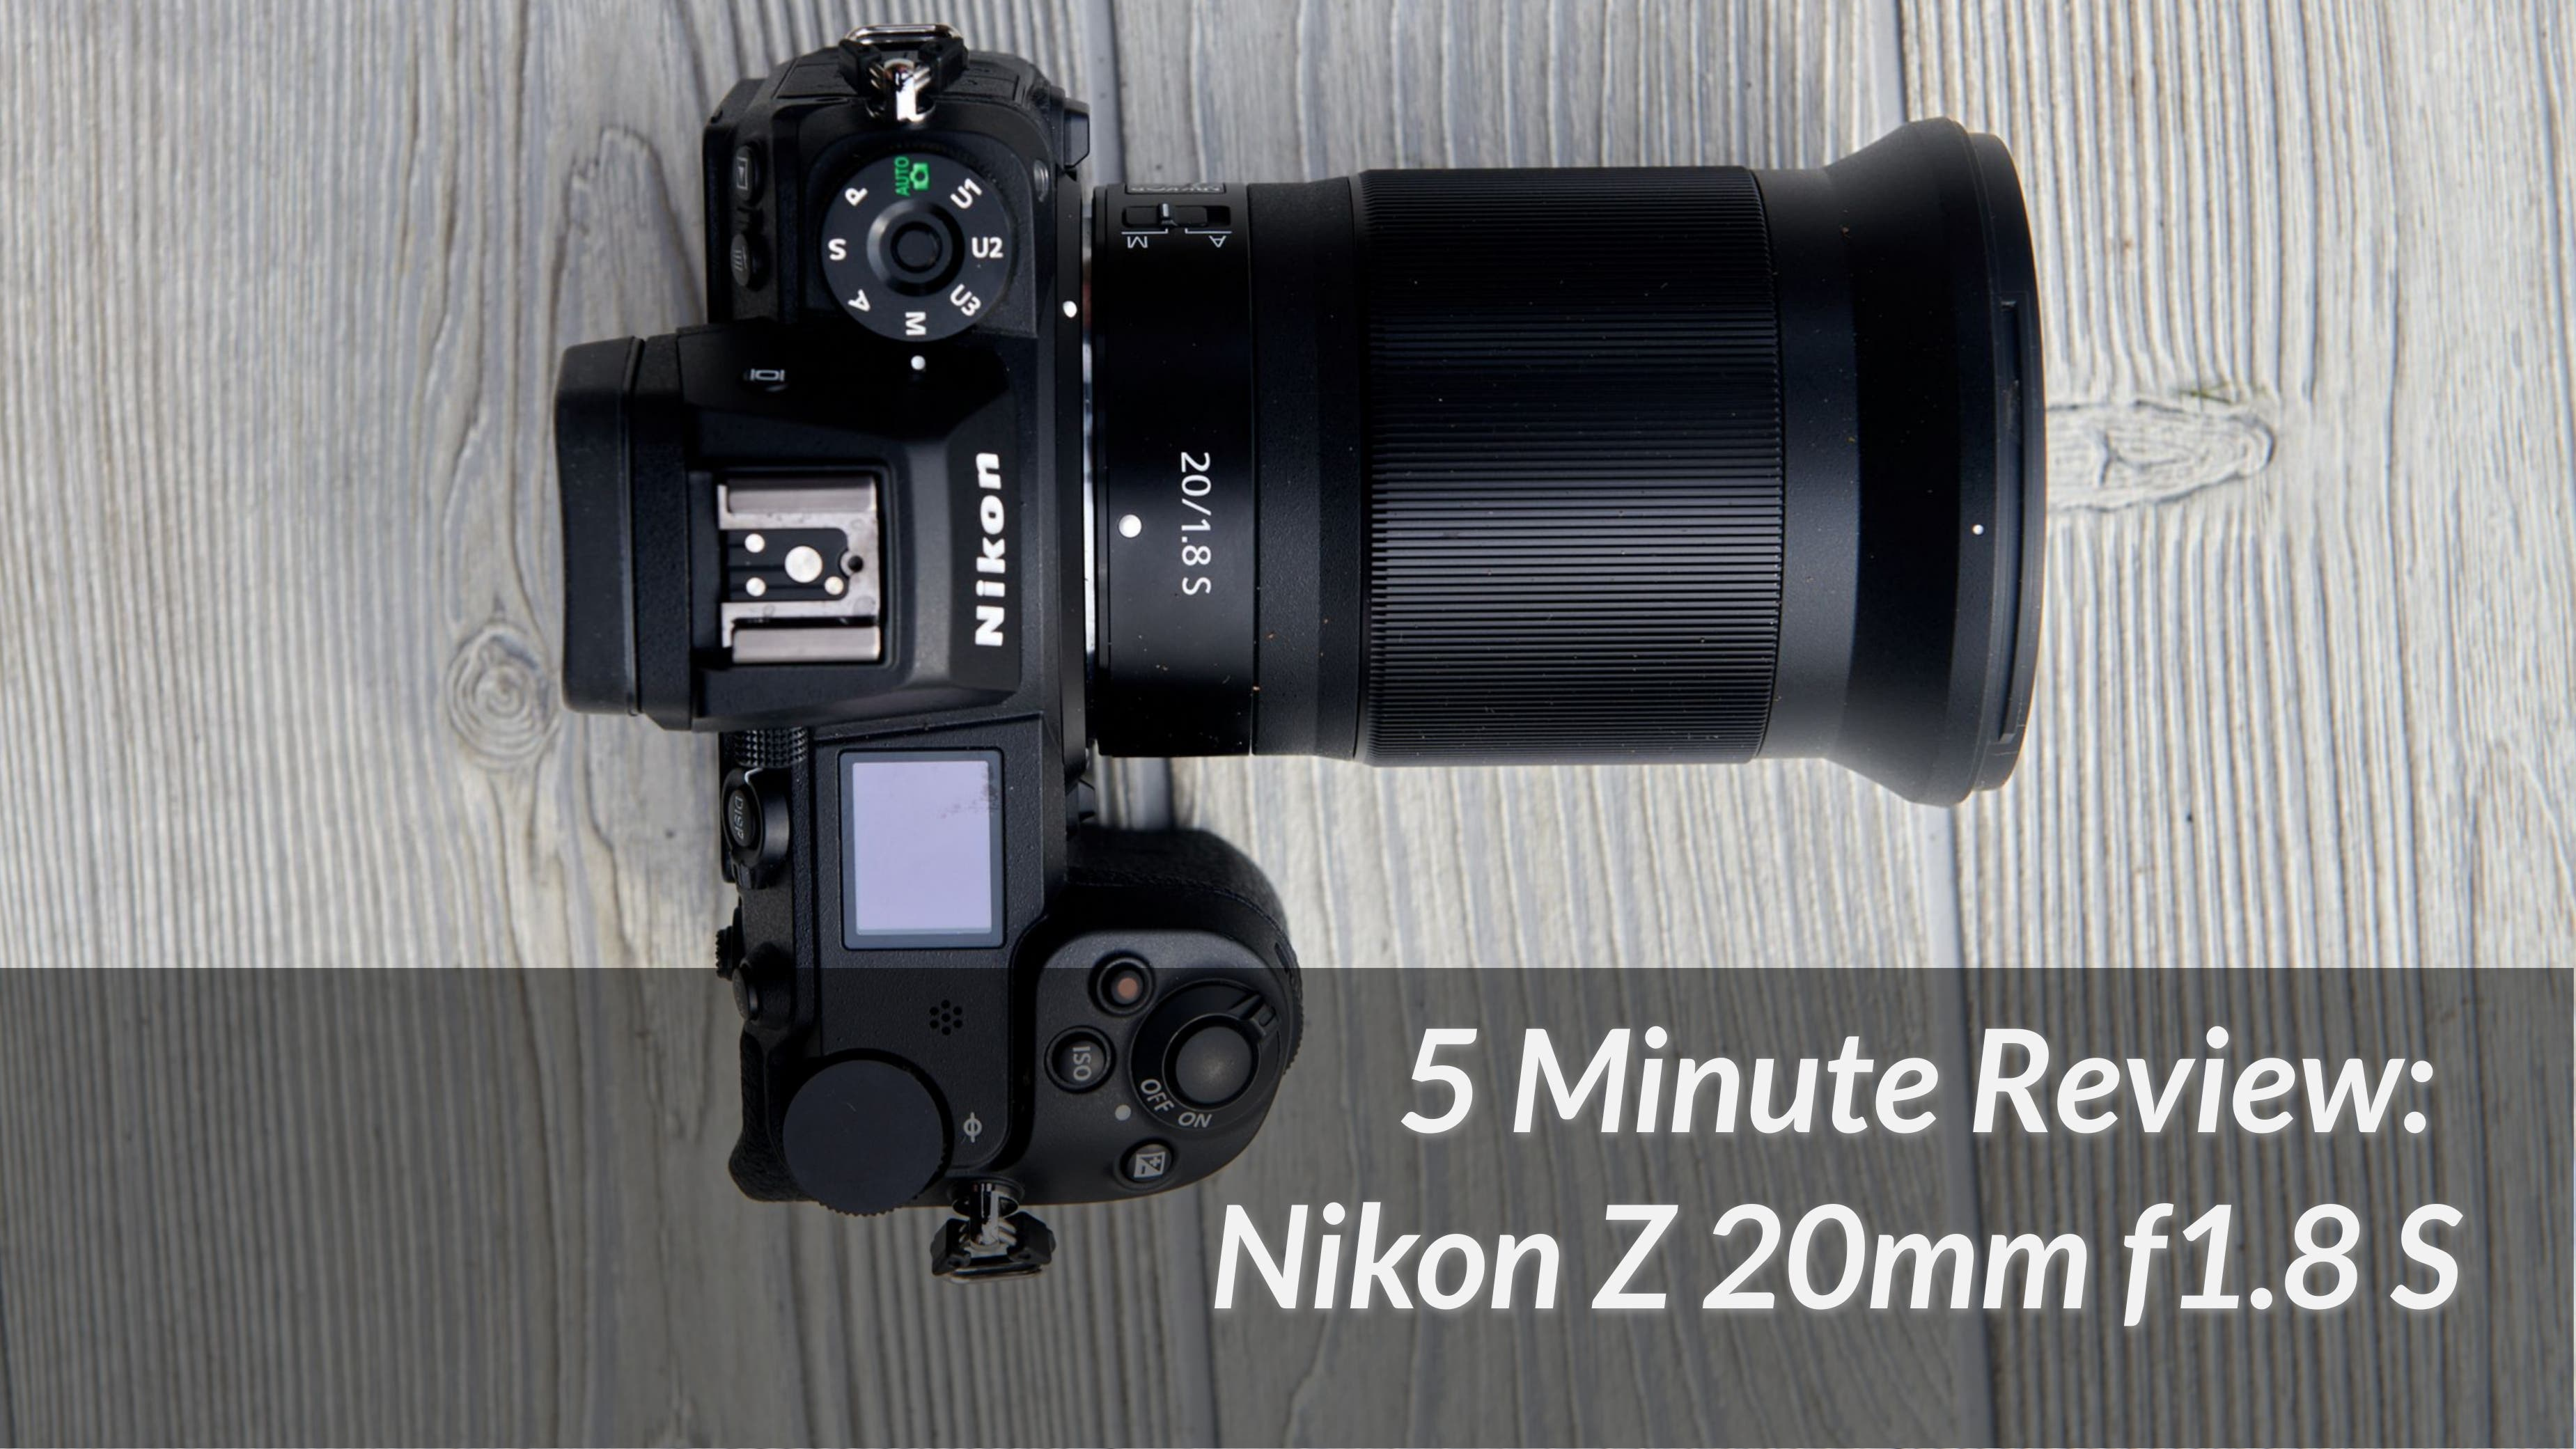 5 Minute Reviews: Is the Nikon Z 20mm f1.8 S Special?